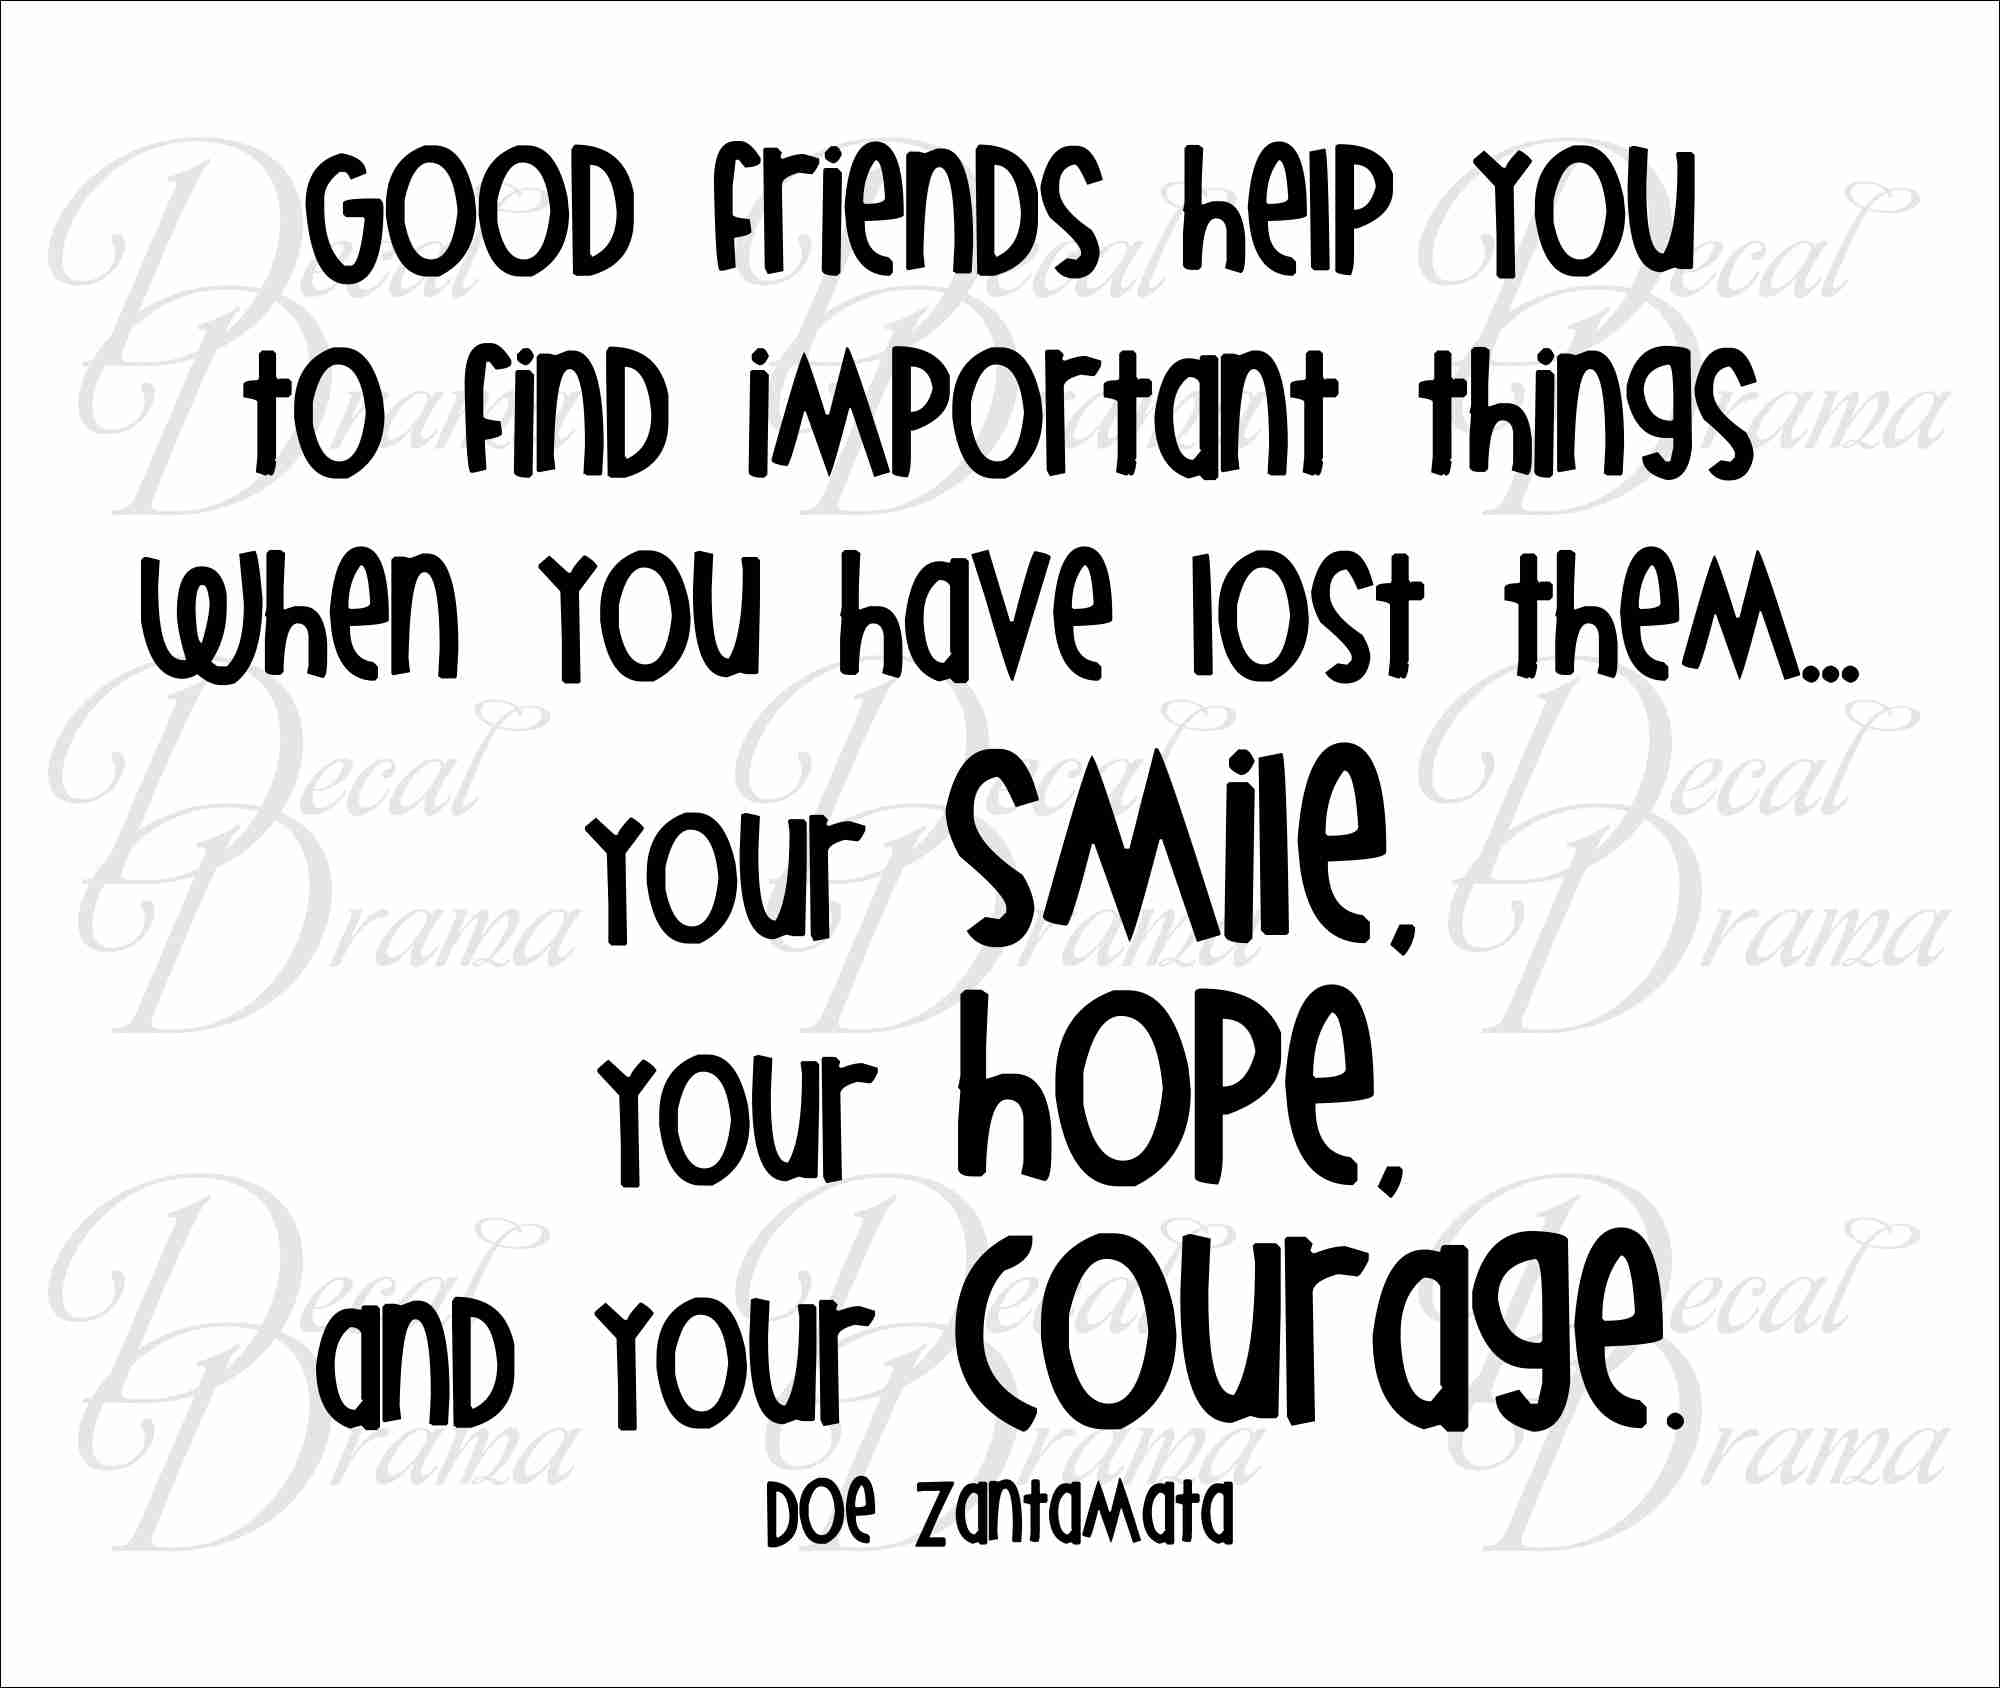 Quotes About Good Friendship Good Friend Help Quotes Good Friends Support Quotes Quotesgram.